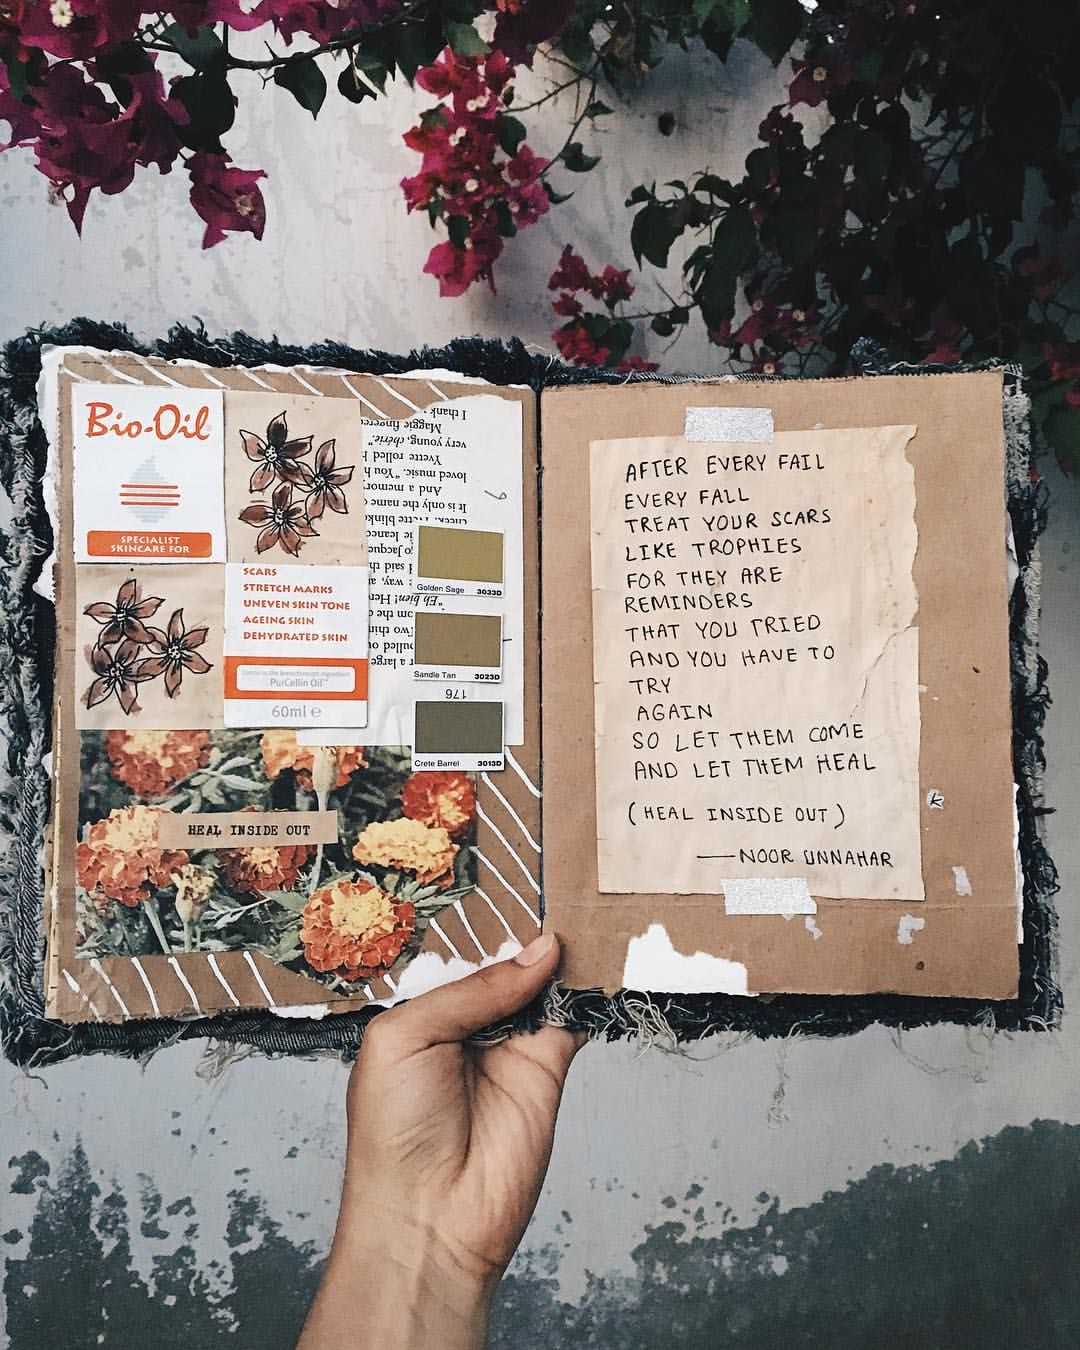 Heal inside out art journal poetry by noor unnahar for Tumblr photo ideas